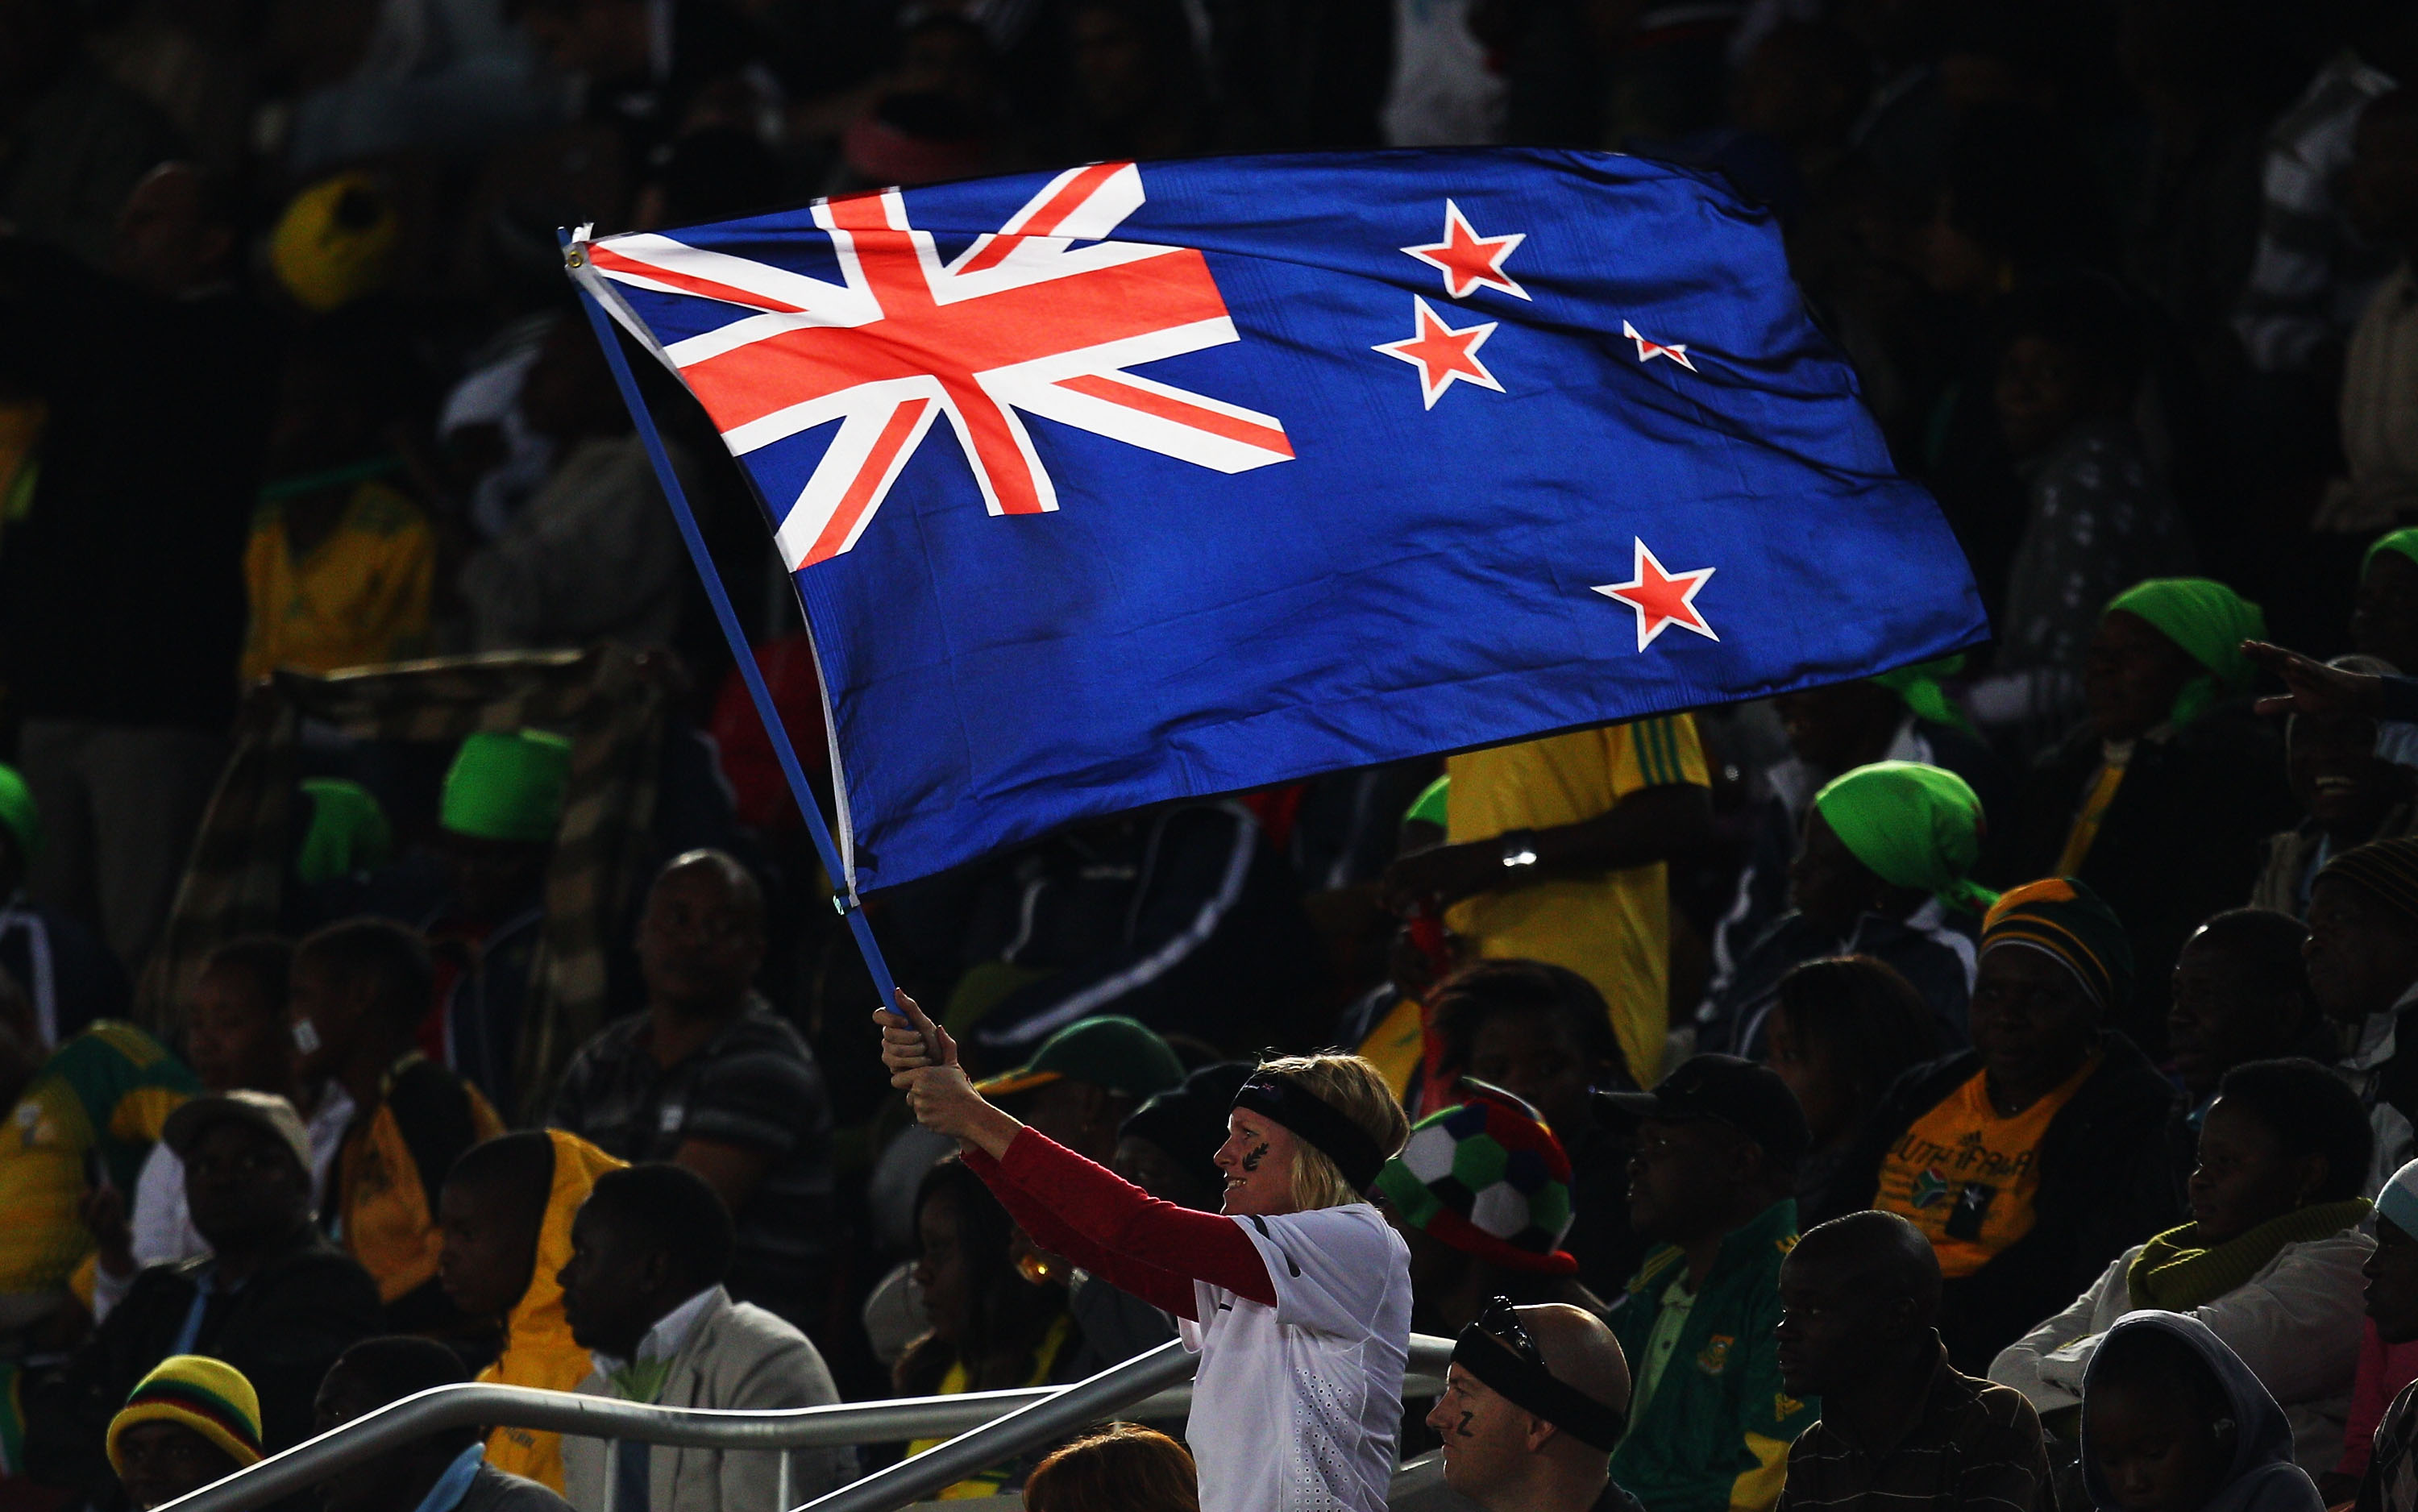 POLOKWANE, SOUTH AFRICA - JUNE 24:  A New Zealand flag waves her national flag during the 2010 FIFA World Cup South Africa Group F match between Paraguay and New Zealand at Peter Mokaba Stadium on June 24, 2010 in Polokwane, South Africa.  (Photo by Camer